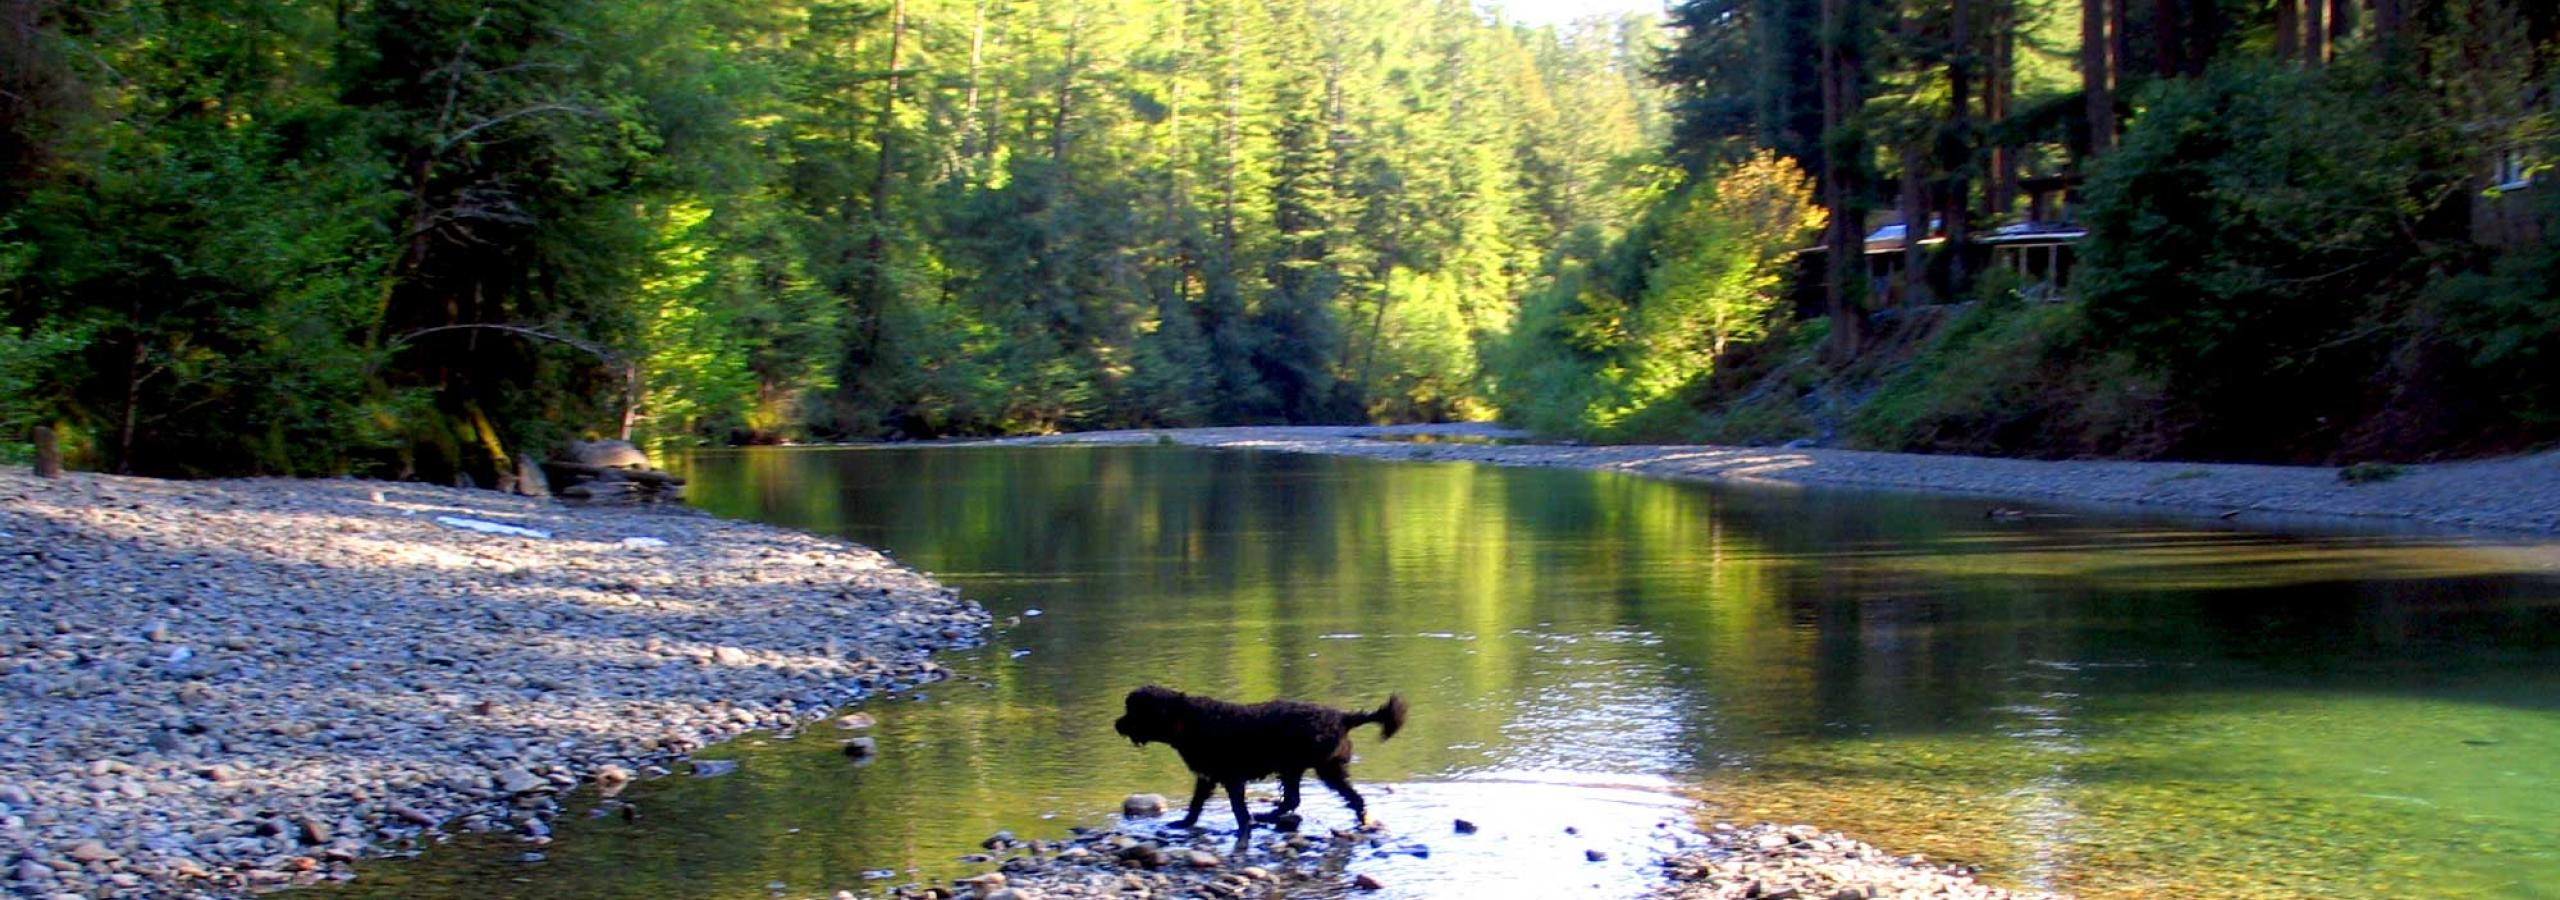 Russian River Dog